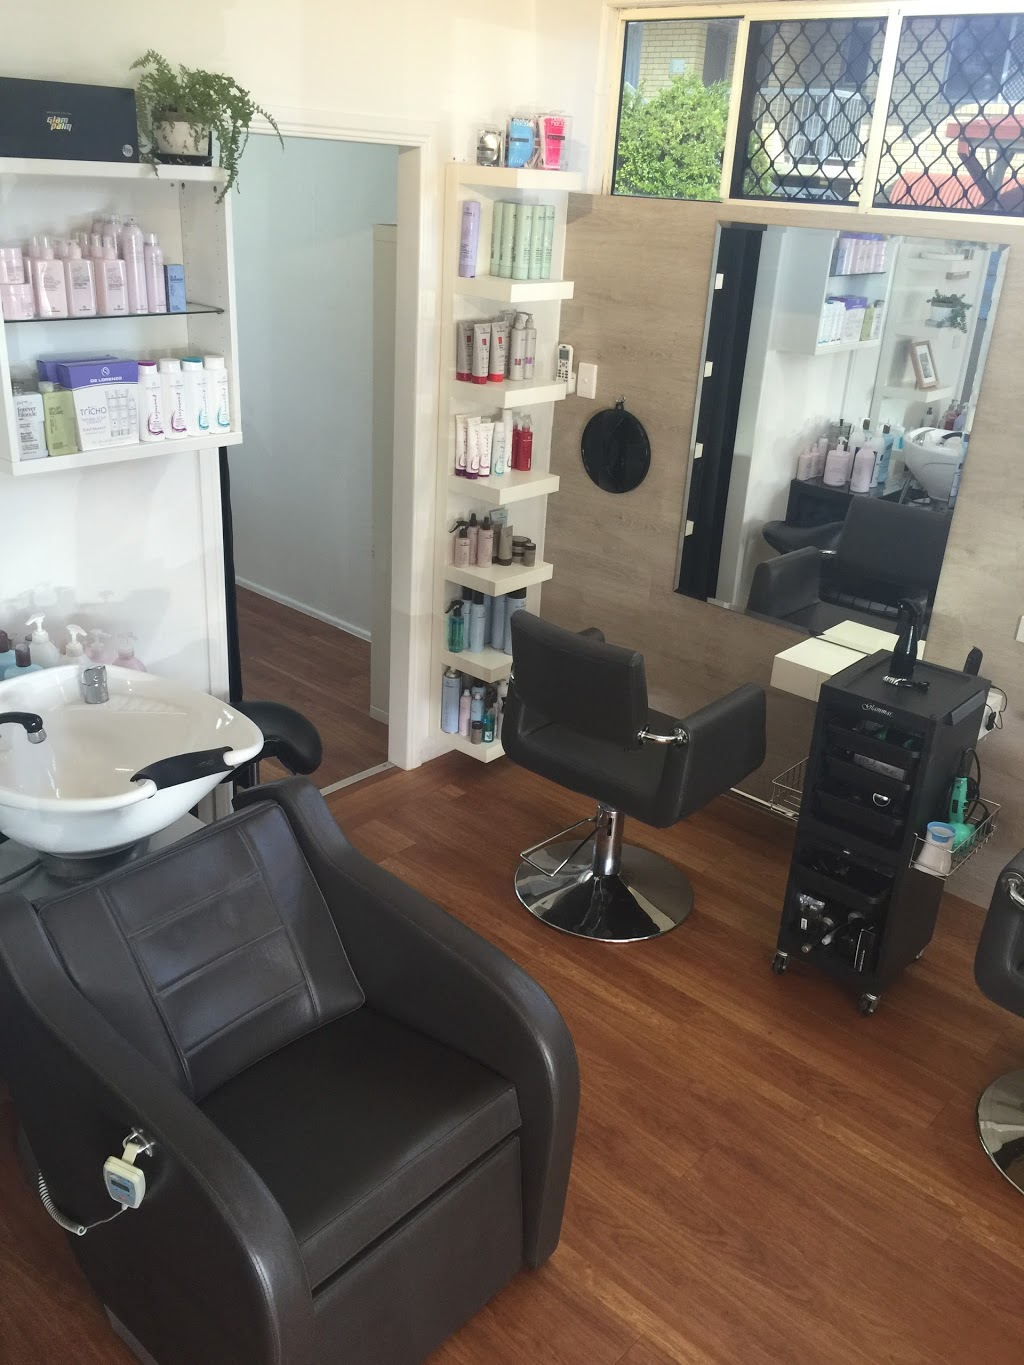 Evermore Beautiful pty ltd | hair care | 1/610 Oxley Ave, Scarborough QLD 4020, Australia | 0732035379 OR +61 7 3203 5379